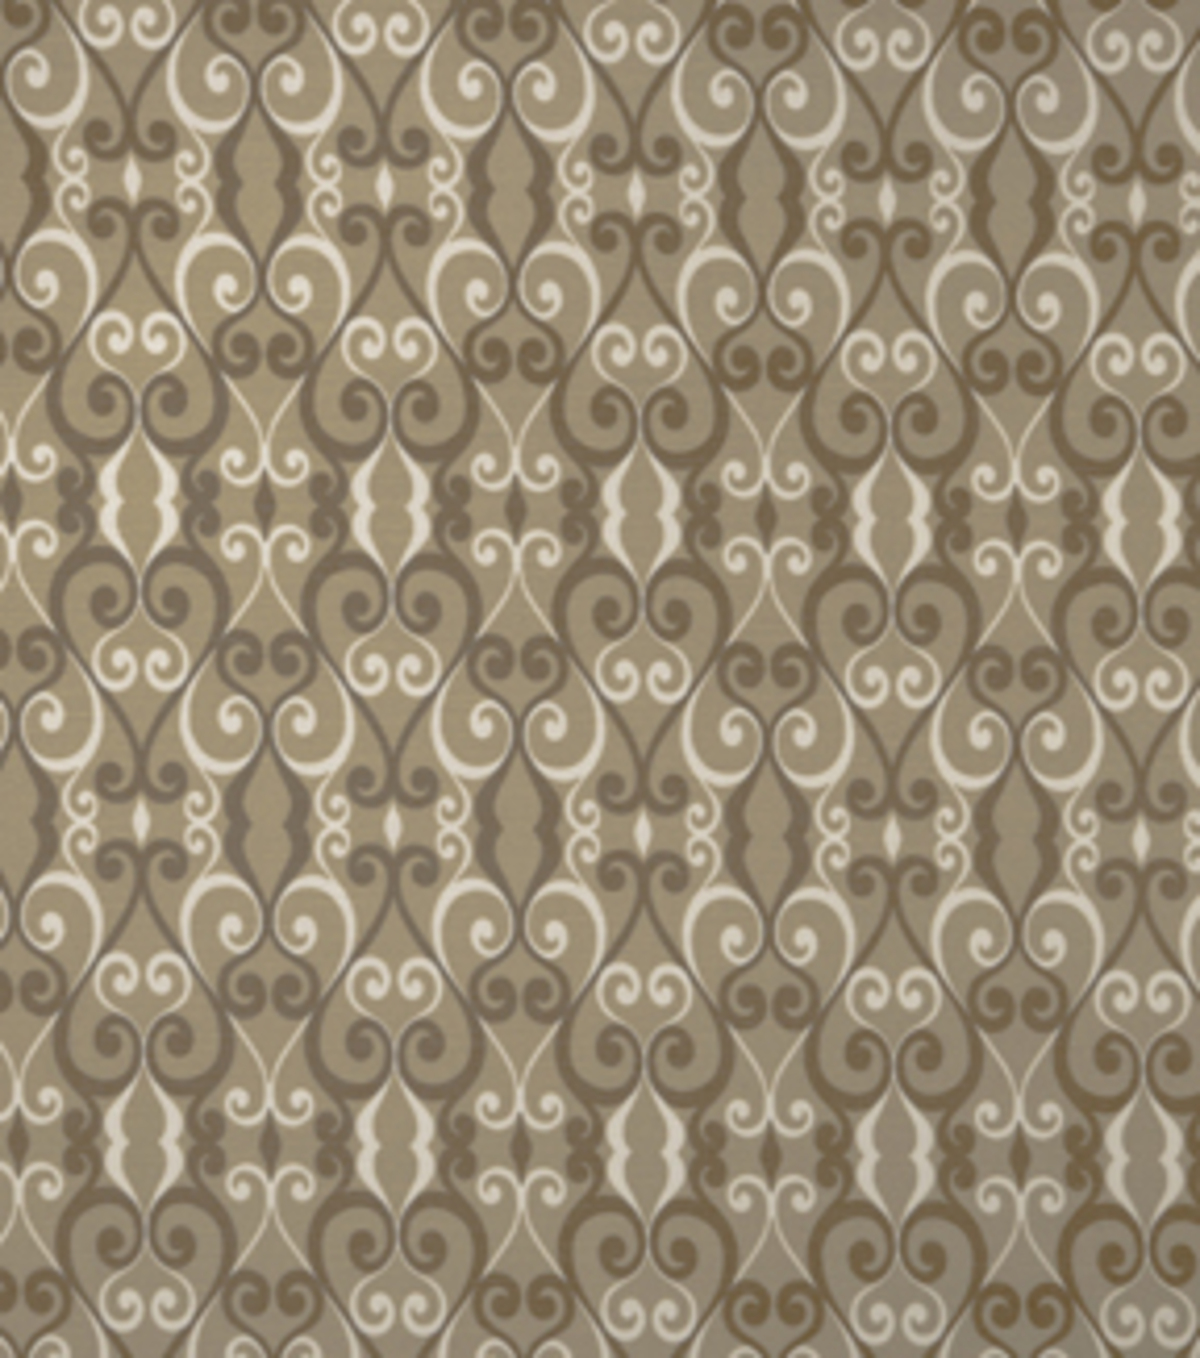 Home Decor 8\u0022x8\u0022 Fabric Swatch-SMC Designs Culver / Khaki